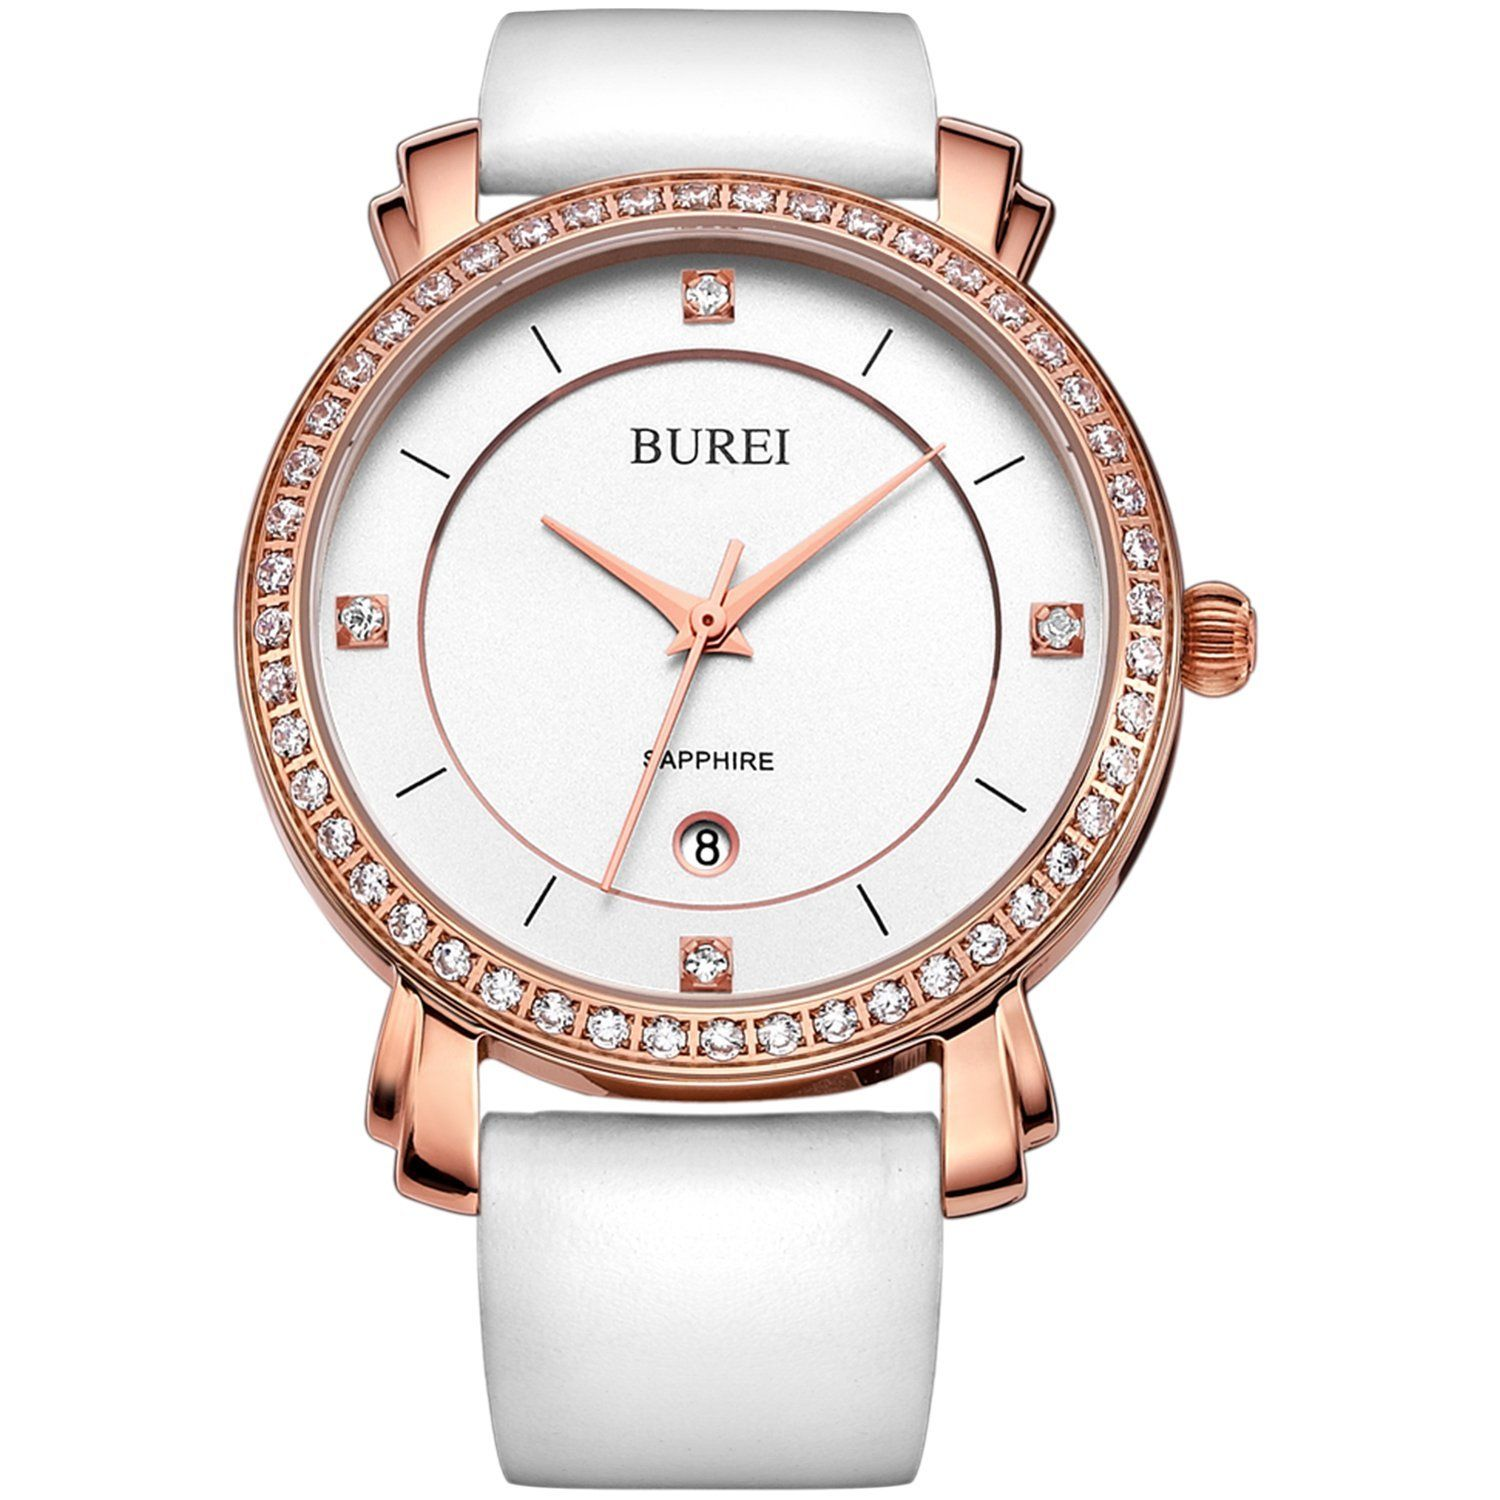 BUREI Women's Elegant Rose Gold Watch with White Leather Band >>> Review more details here